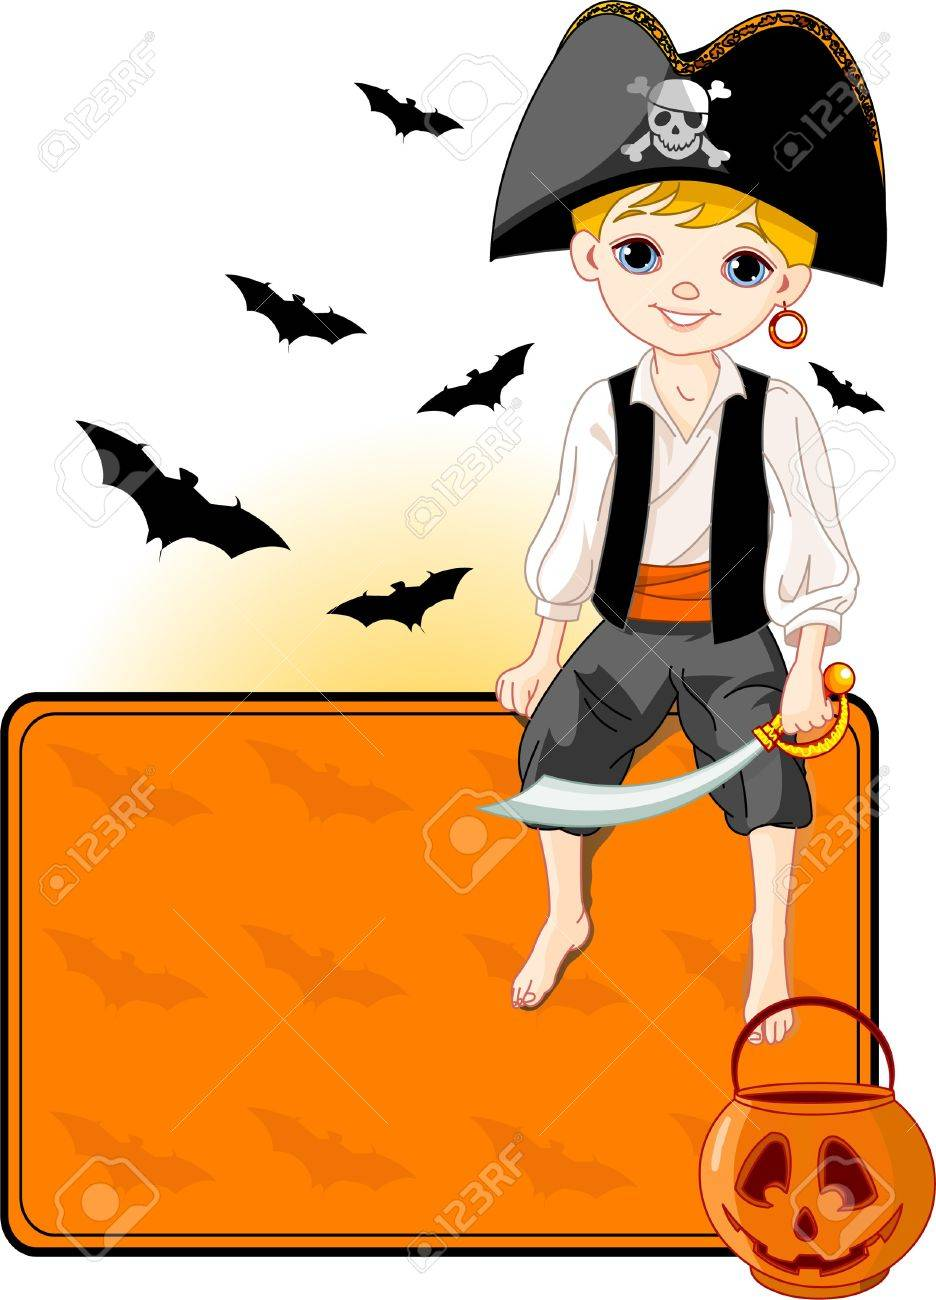 Illustration for Halloween with a cute pirate sitting on place card. All objects are separate groups Stock Vector - 7879539